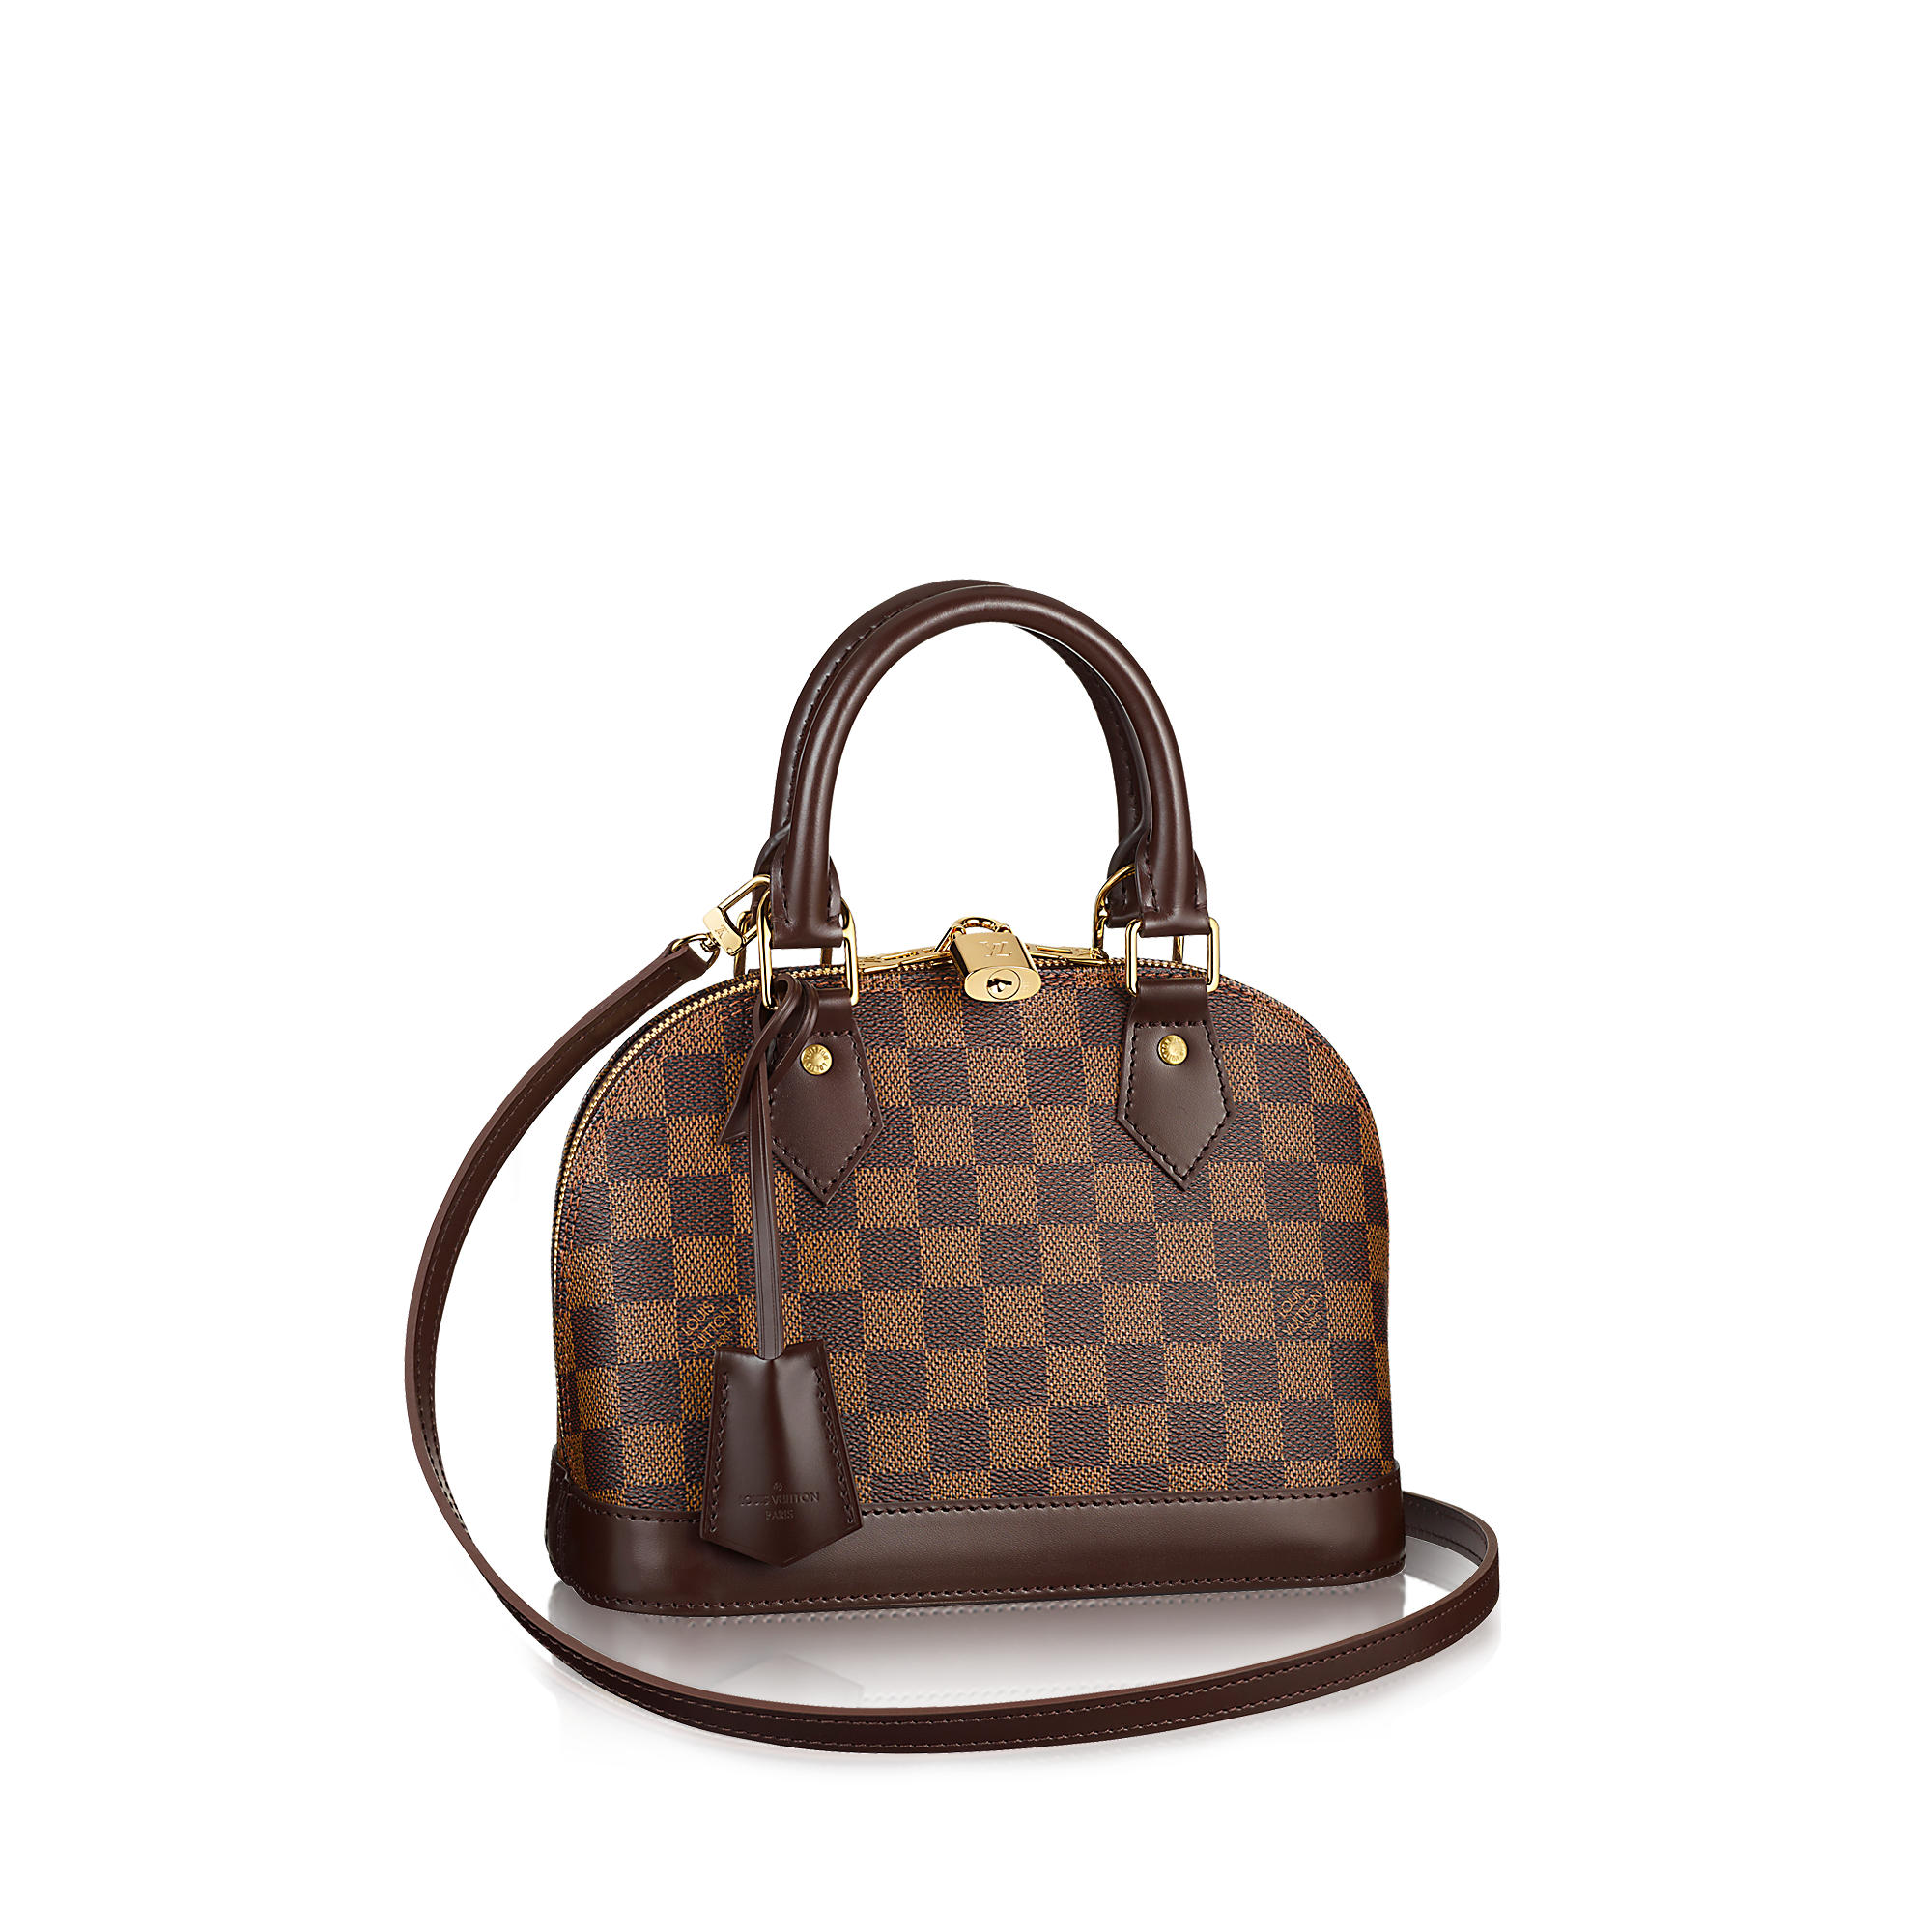 Louis Vuitton clipart alma Search 73 results myLV